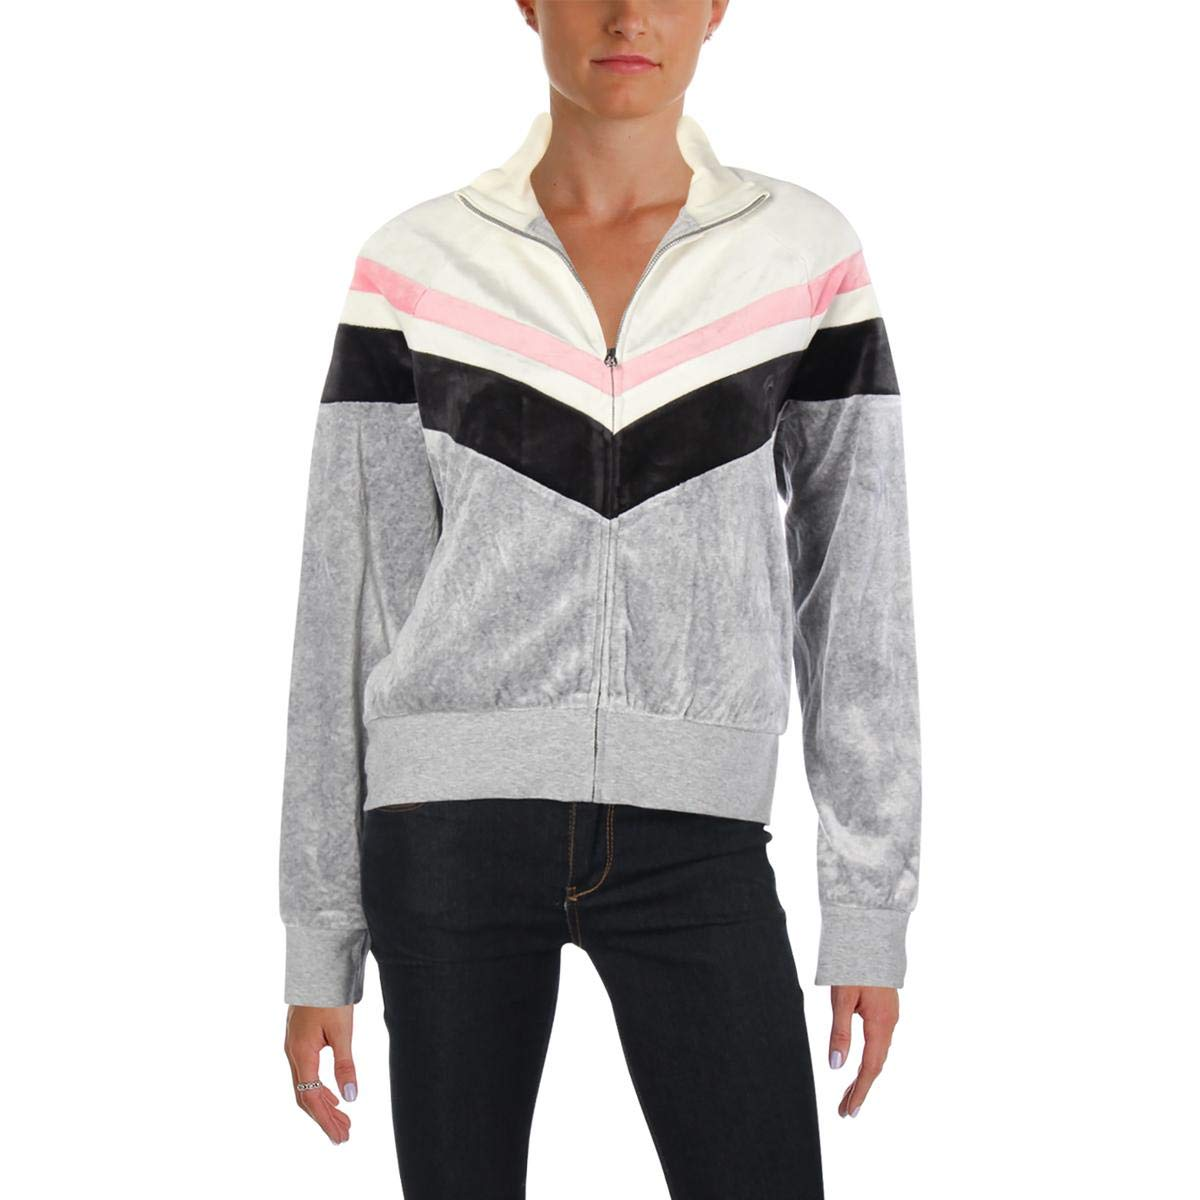 199e921bed08 Amazon.com: Juicy Couture Black Label Womens Palisades Velour Colorblock  Jacket Gray S: Clothing